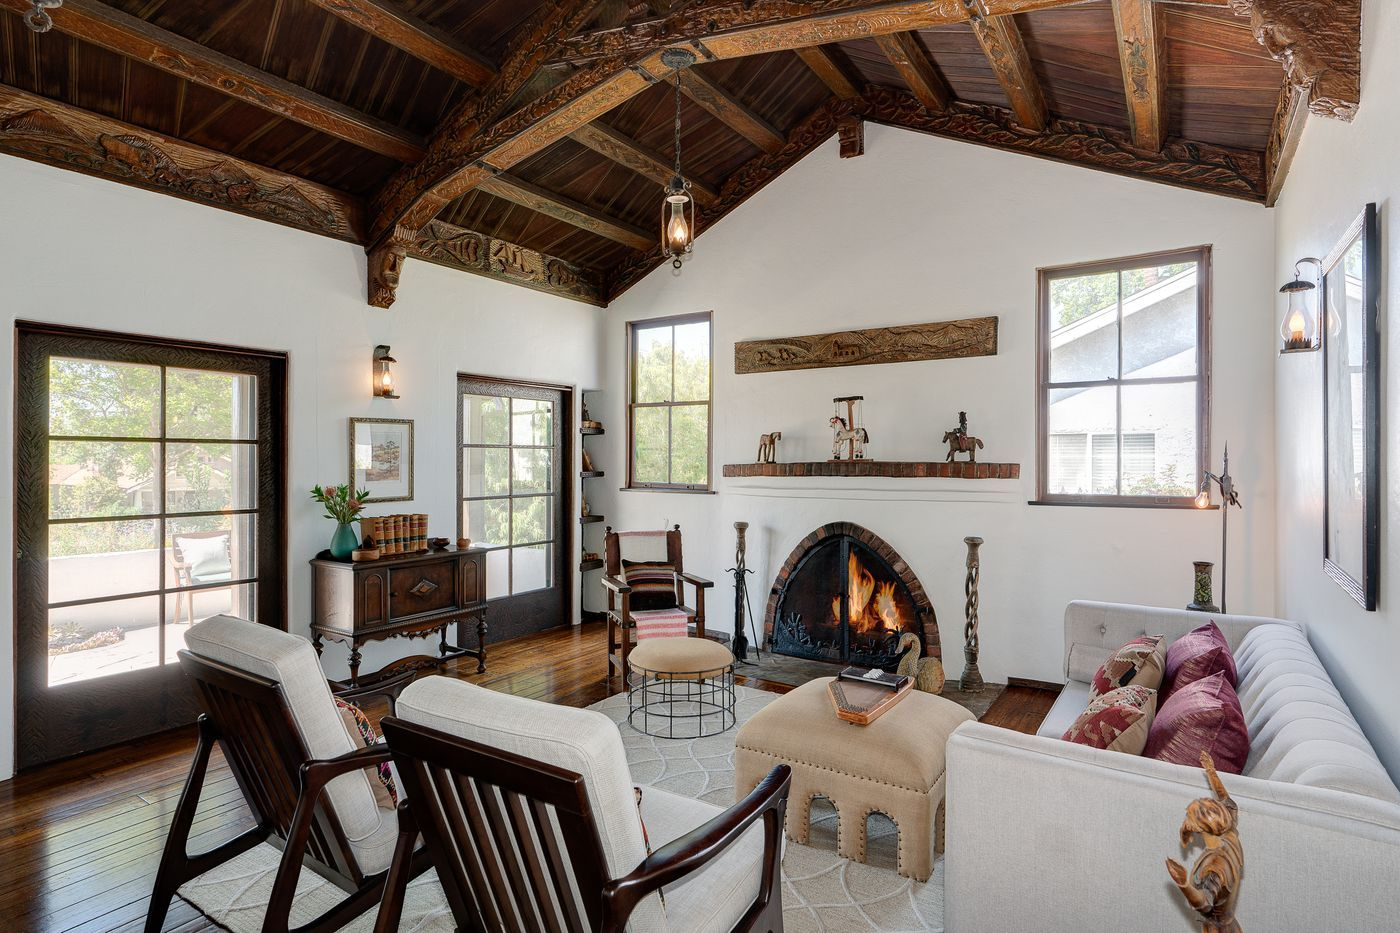 1929 Spanish Style Home In Pasadena Is A Stunning Work Of Art For 899k Spanish Style Homes Spanish Style Decor Spanish Style